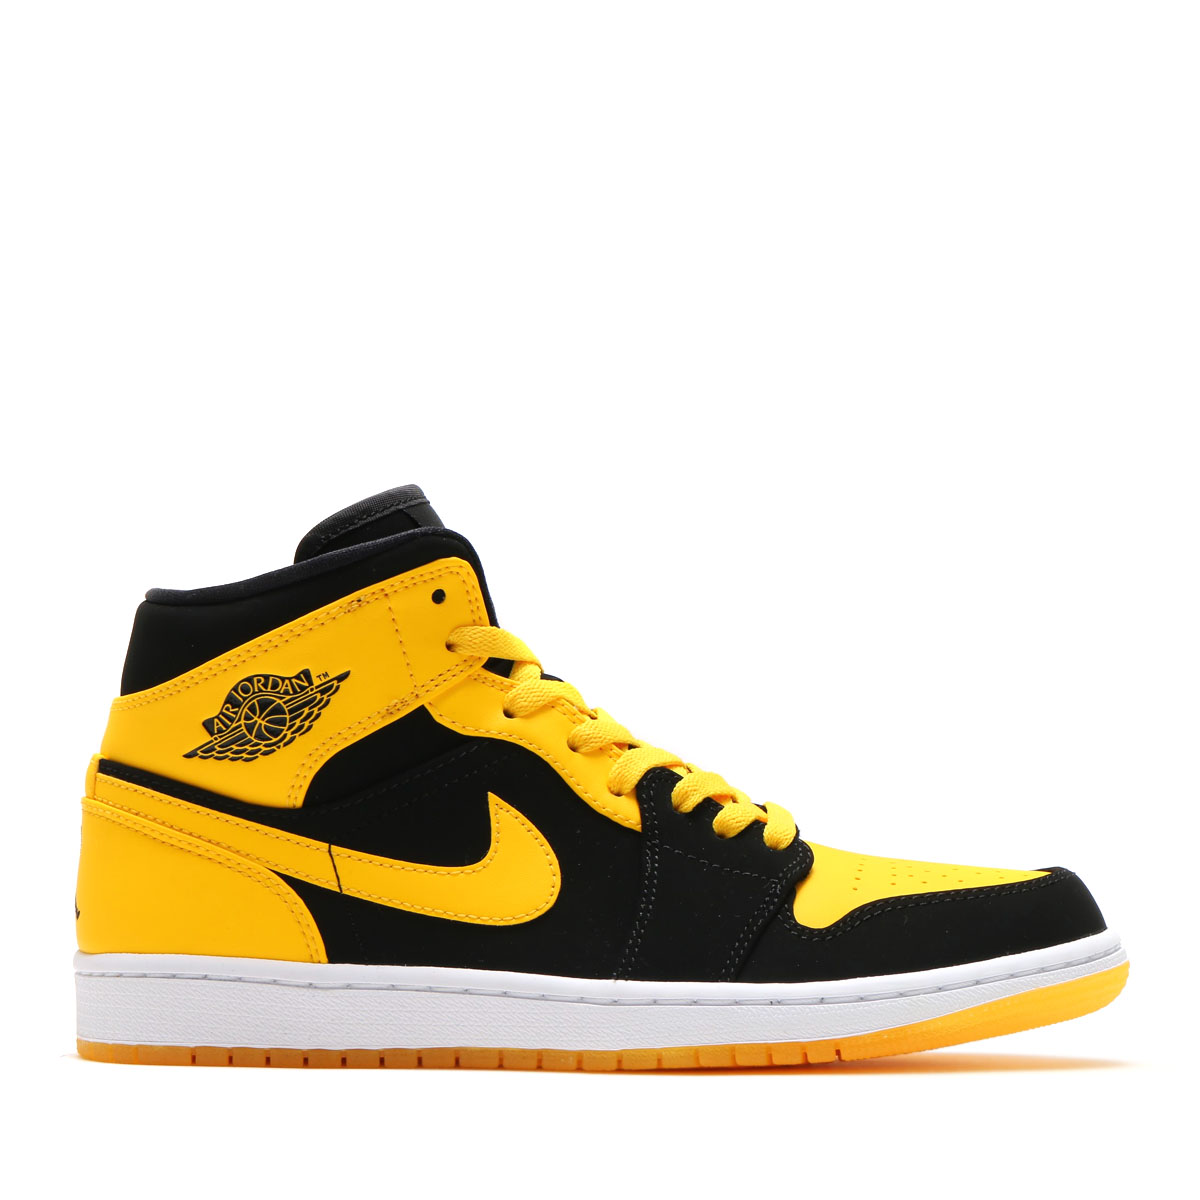 "NIKE AIR JORDAN 1 MID ""New Love"" (Nike Air Jordan 1 mid) (BLACK/VARSITY MAIZE-WHITE) 17SS-I"